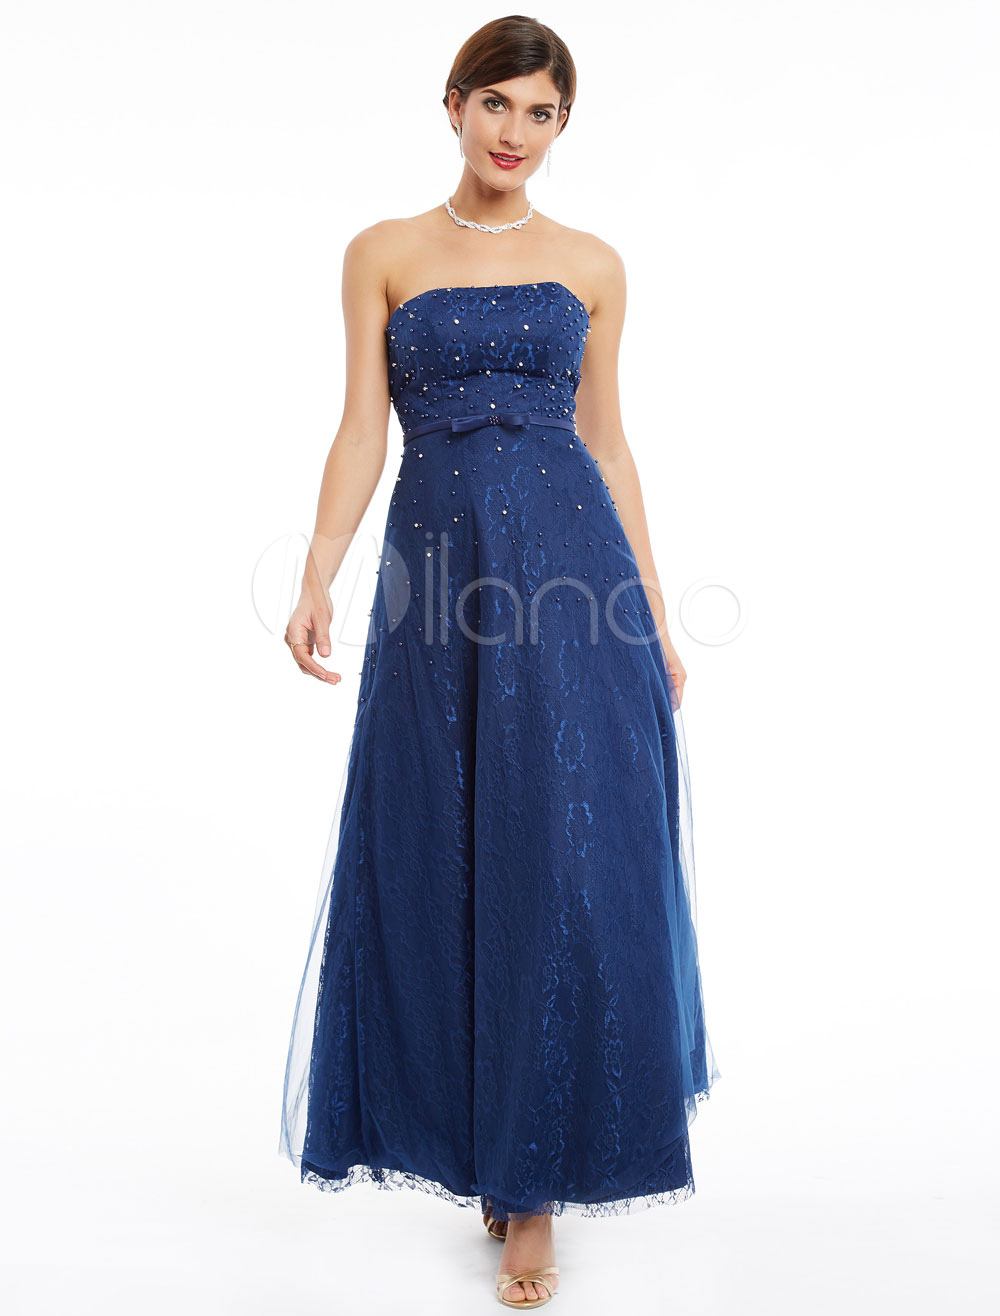 Buy Prom Dresses Dark Navy Long Strapless Lace Beading Floor Length Bow Sash Backless Formal Dress for $106.79 in Milanoo store